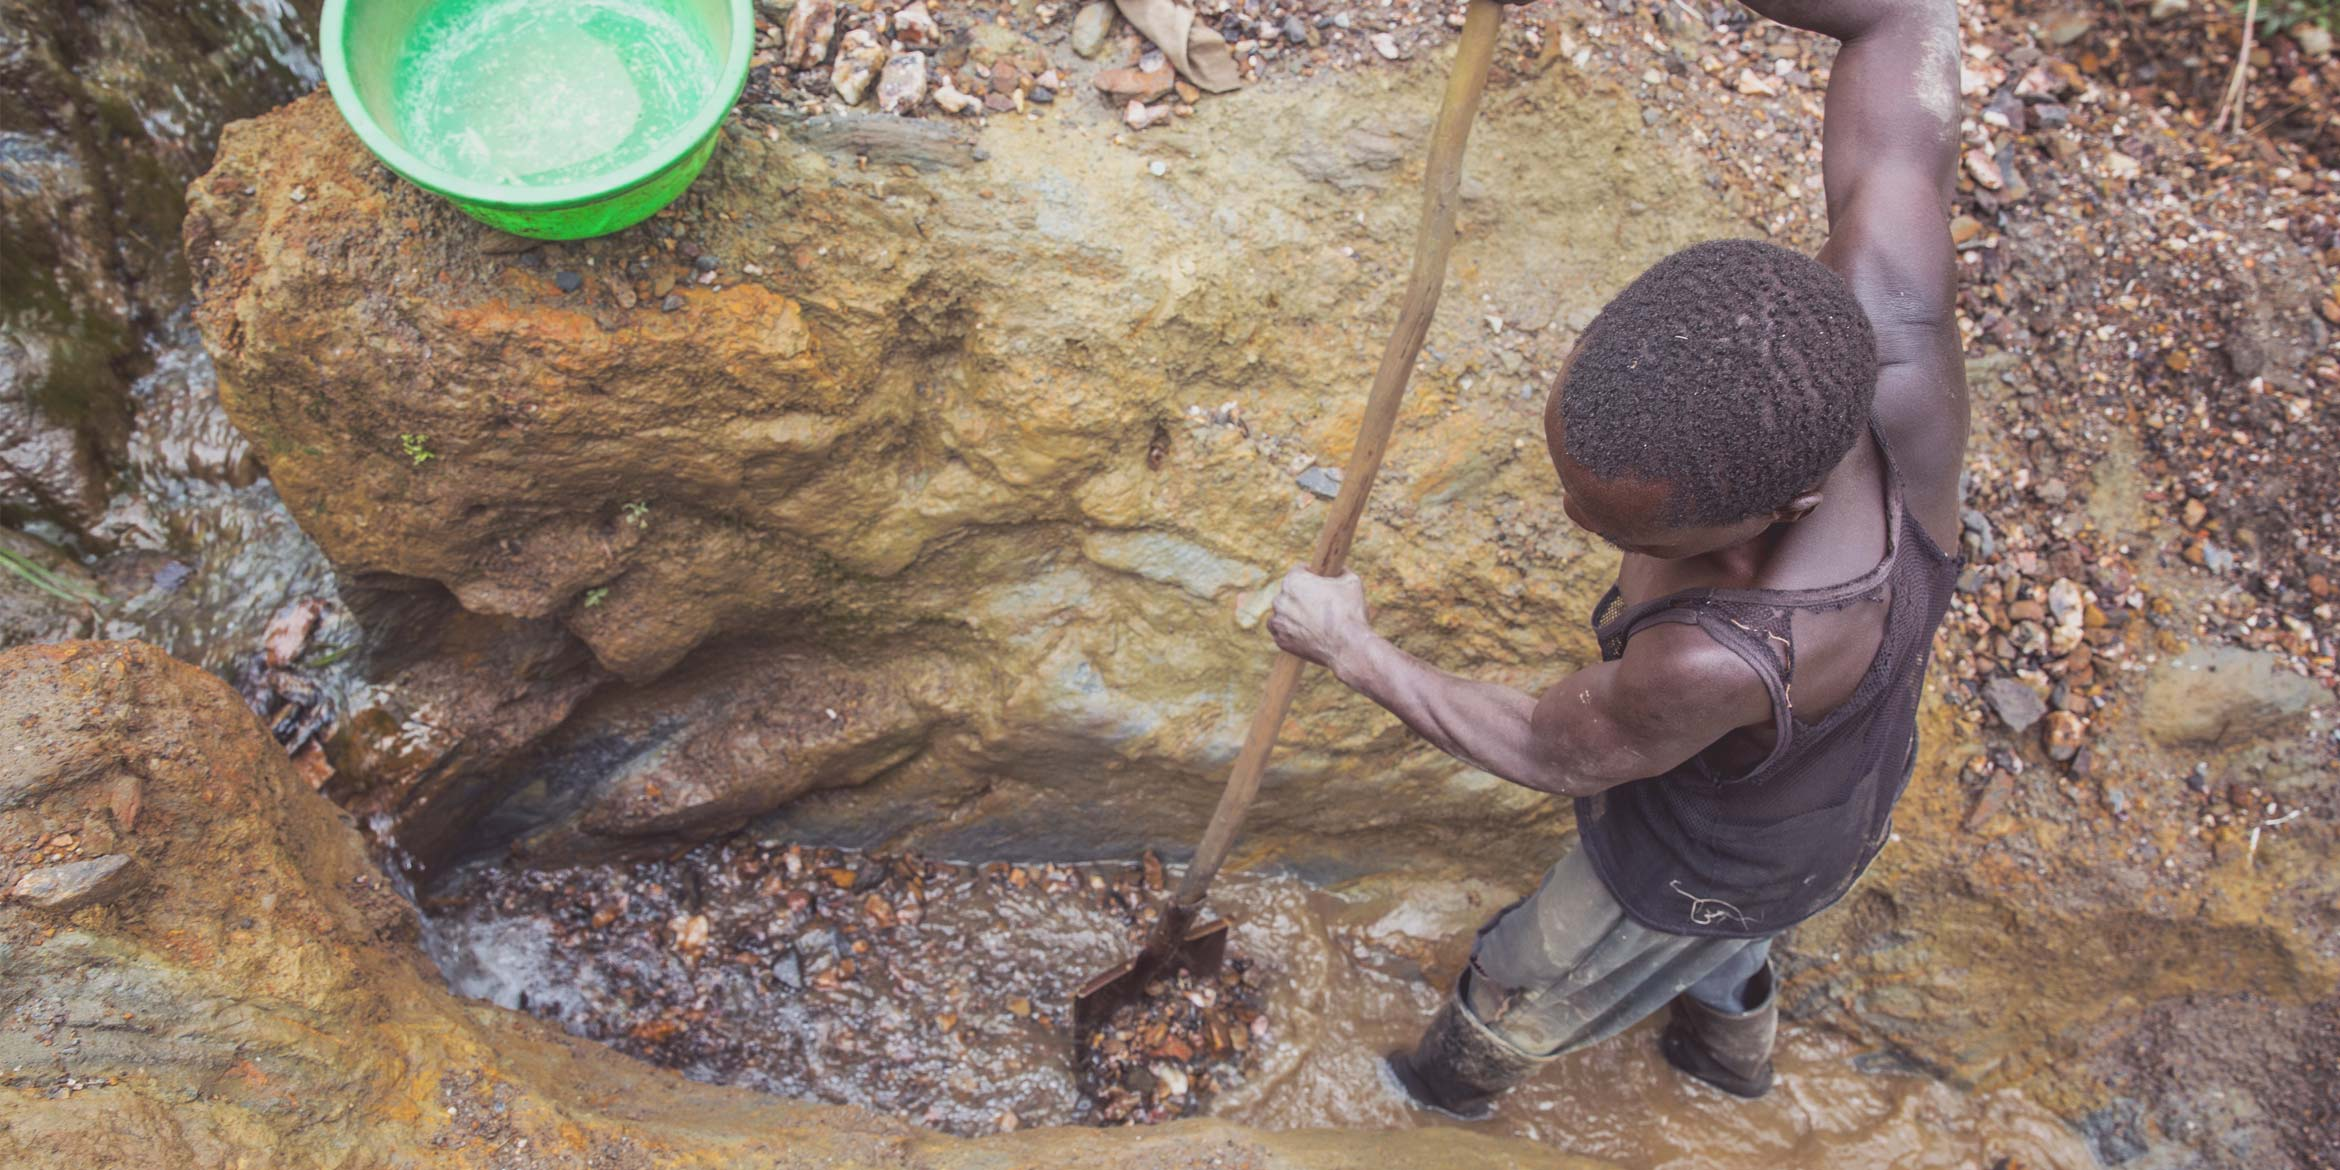 Conflict minerals used in IT products drive wars and human rights abuses